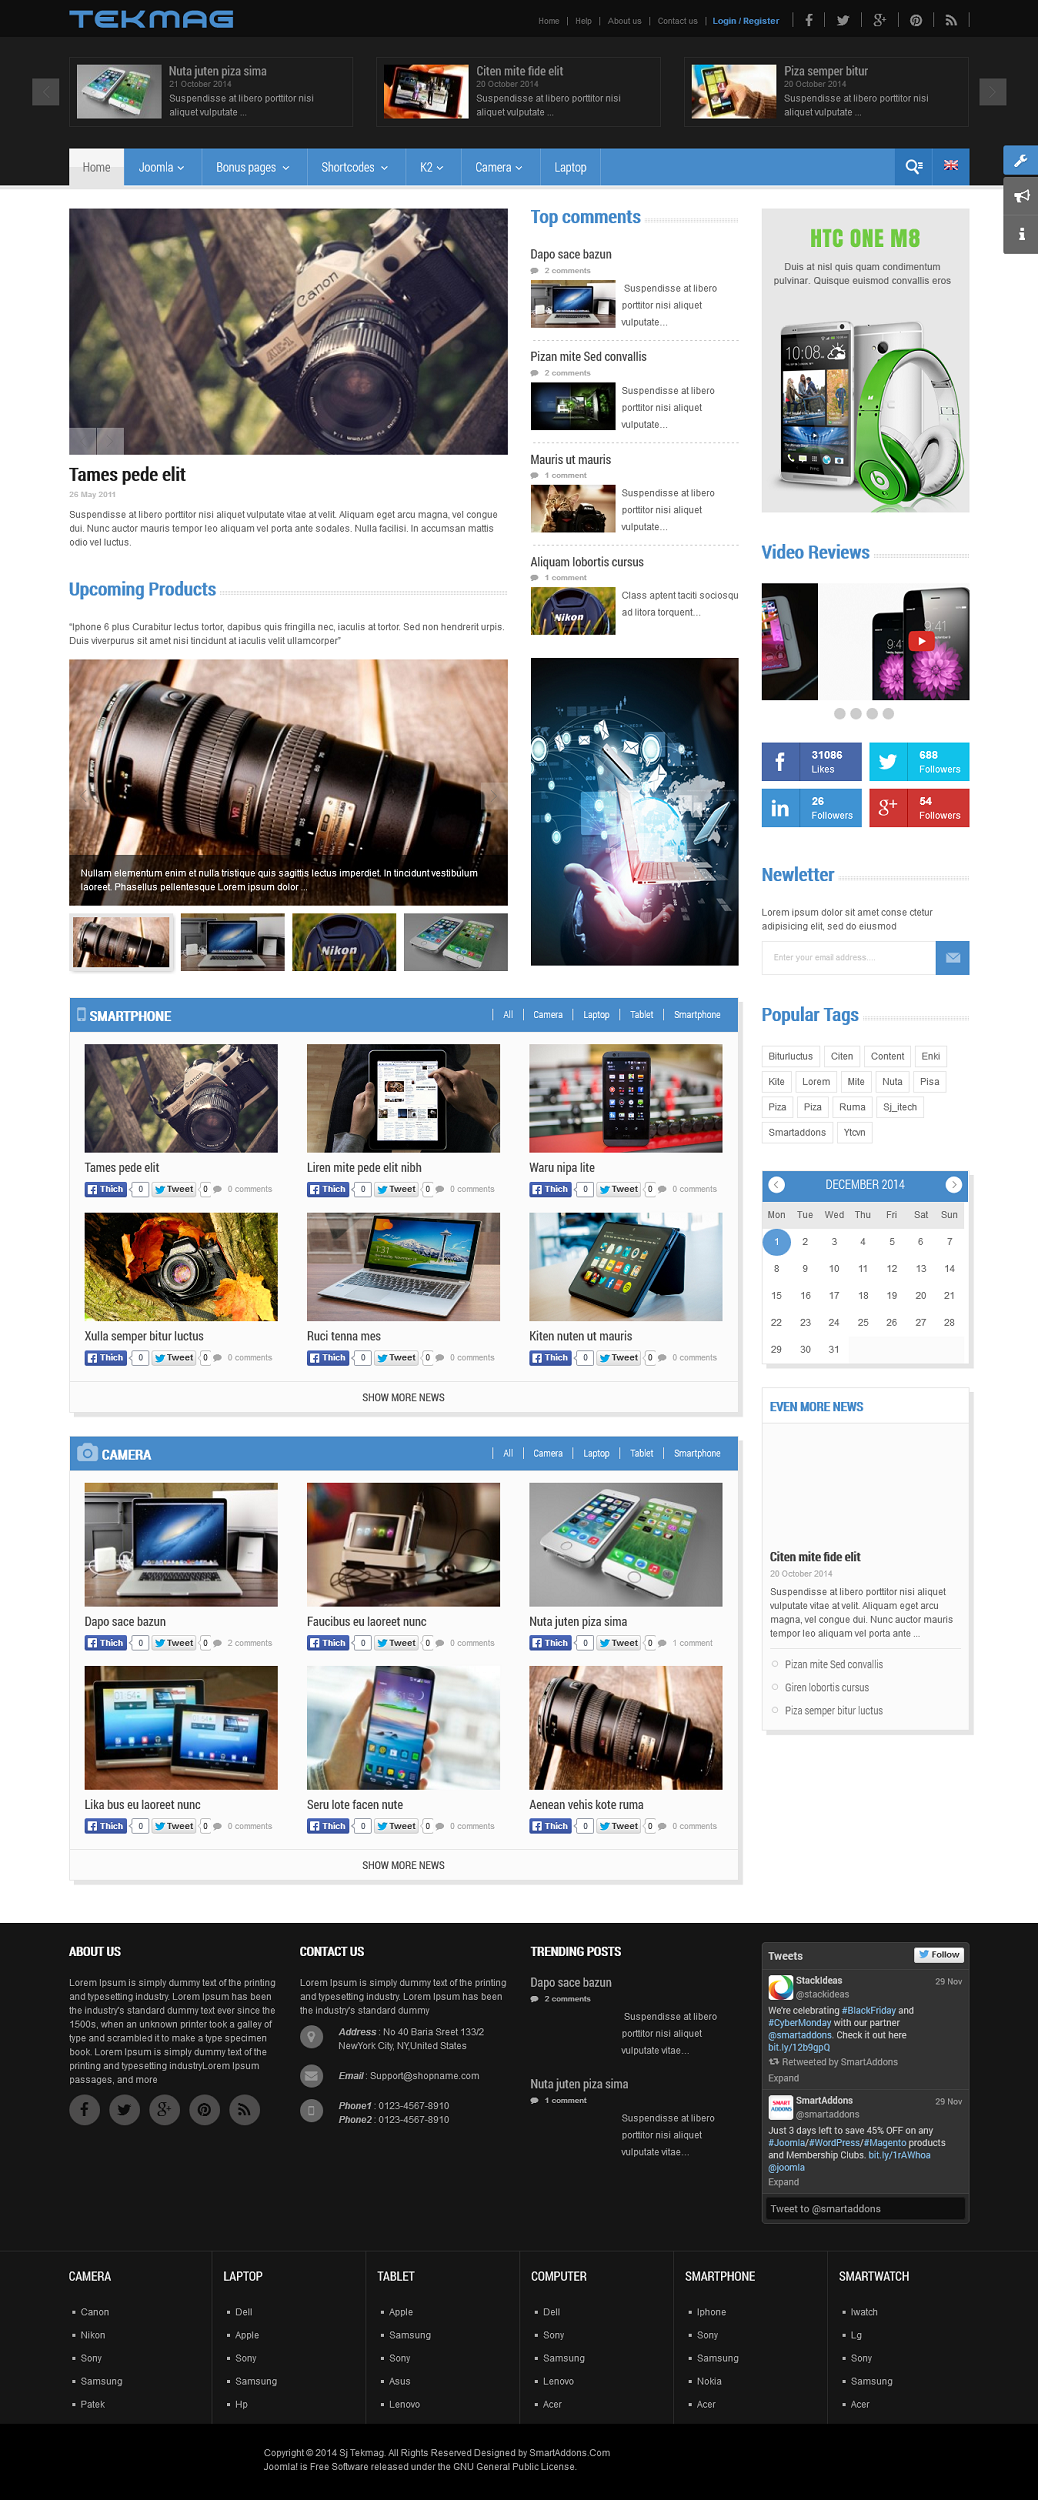 SJ Tekmag- Responsive Joomla Hi-Tech Template - 02_index.png